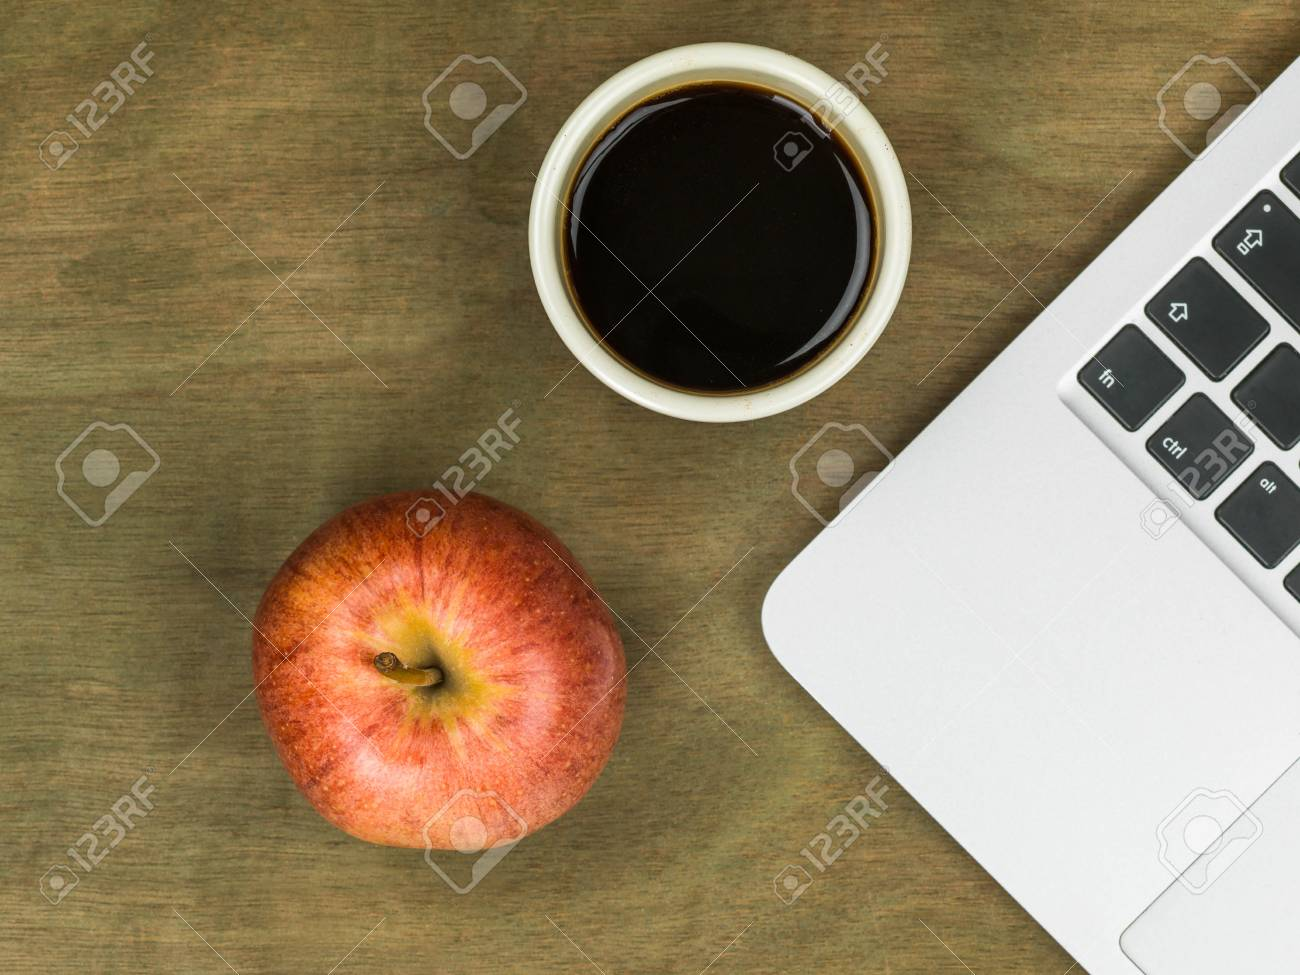 https www 123rf com photo 82666248 computer workstation with an apple and a cup of black coffee on a distressed wooden desk top html